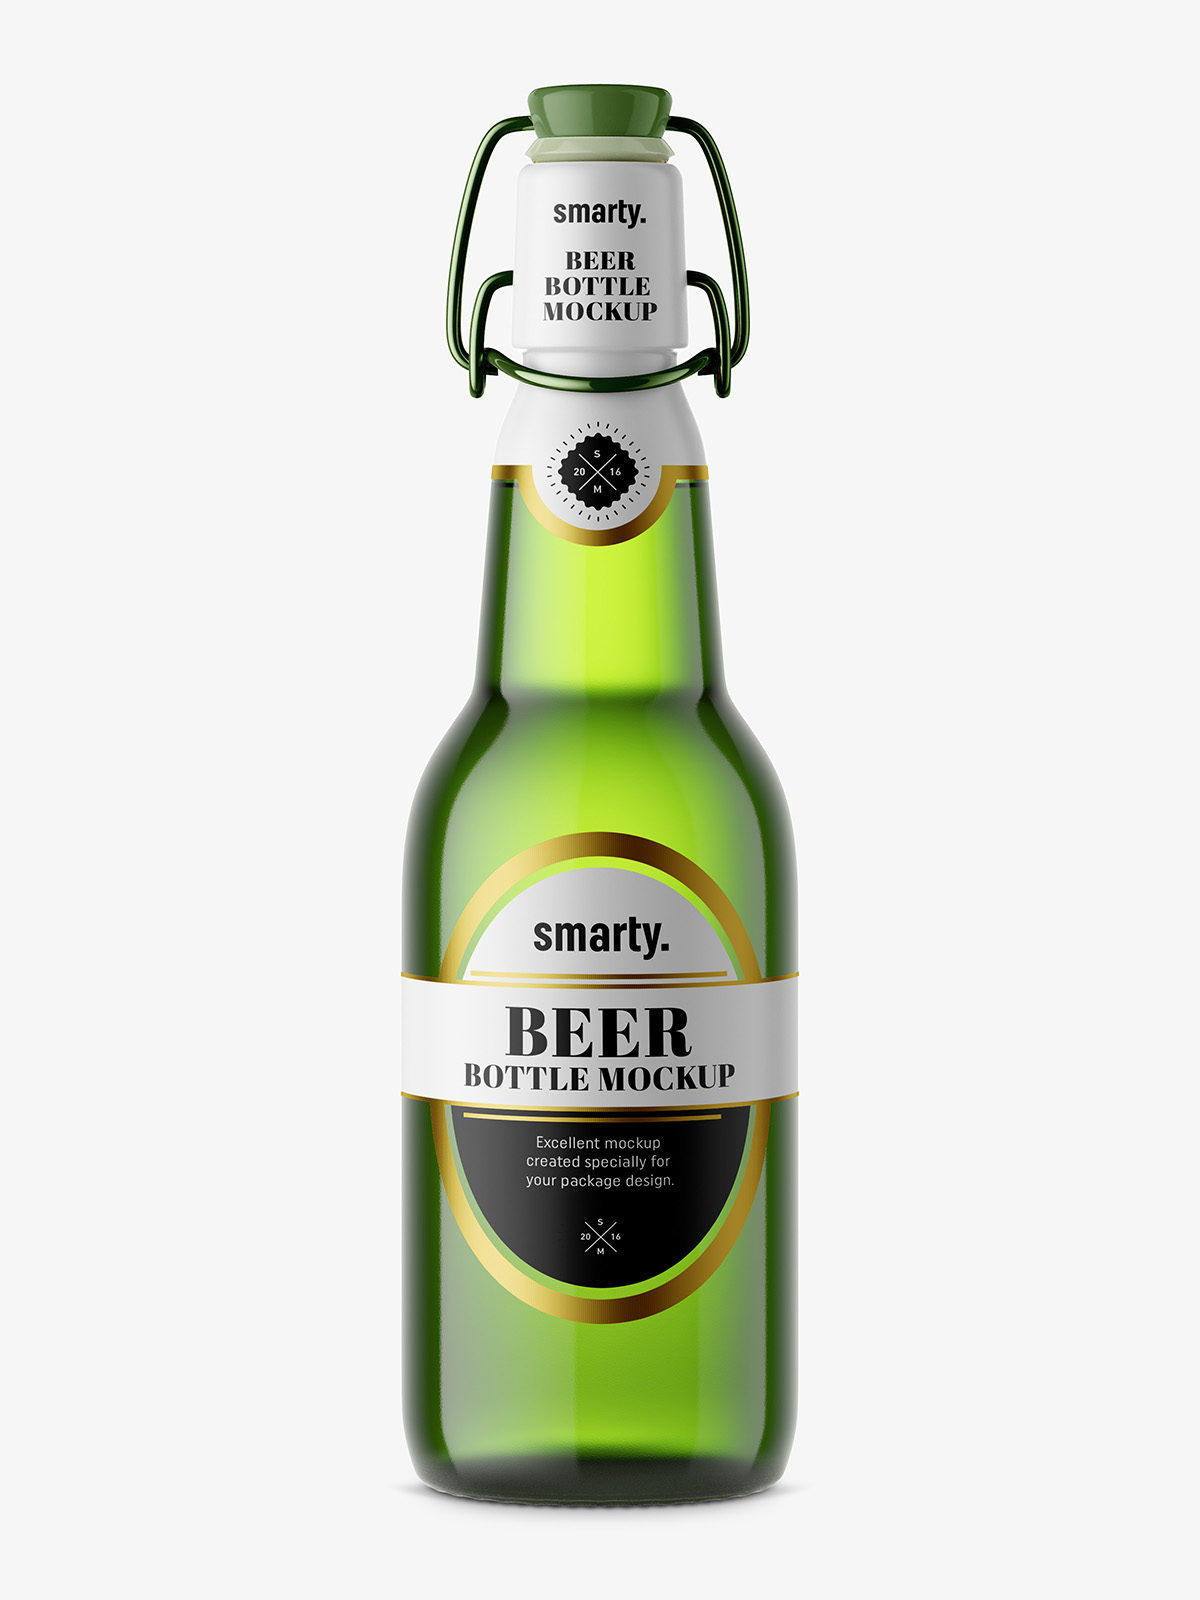 Beer bottle mockup with swing top / green